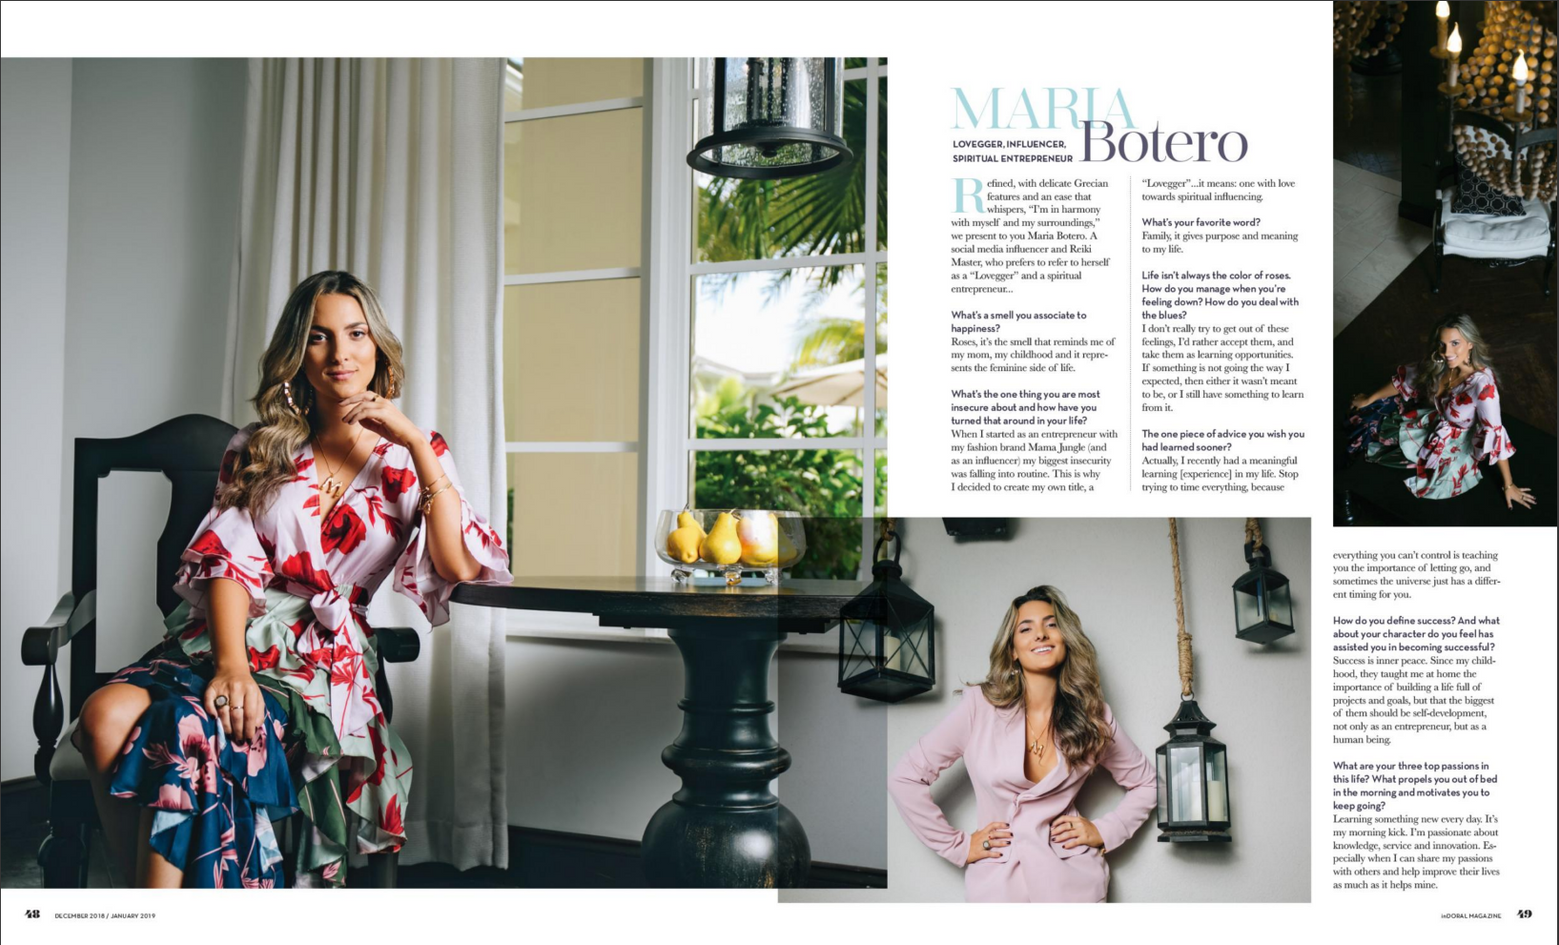 inDoral Magazine, Dec/Jan 2018 Girl Boss Issue, Maria Botero